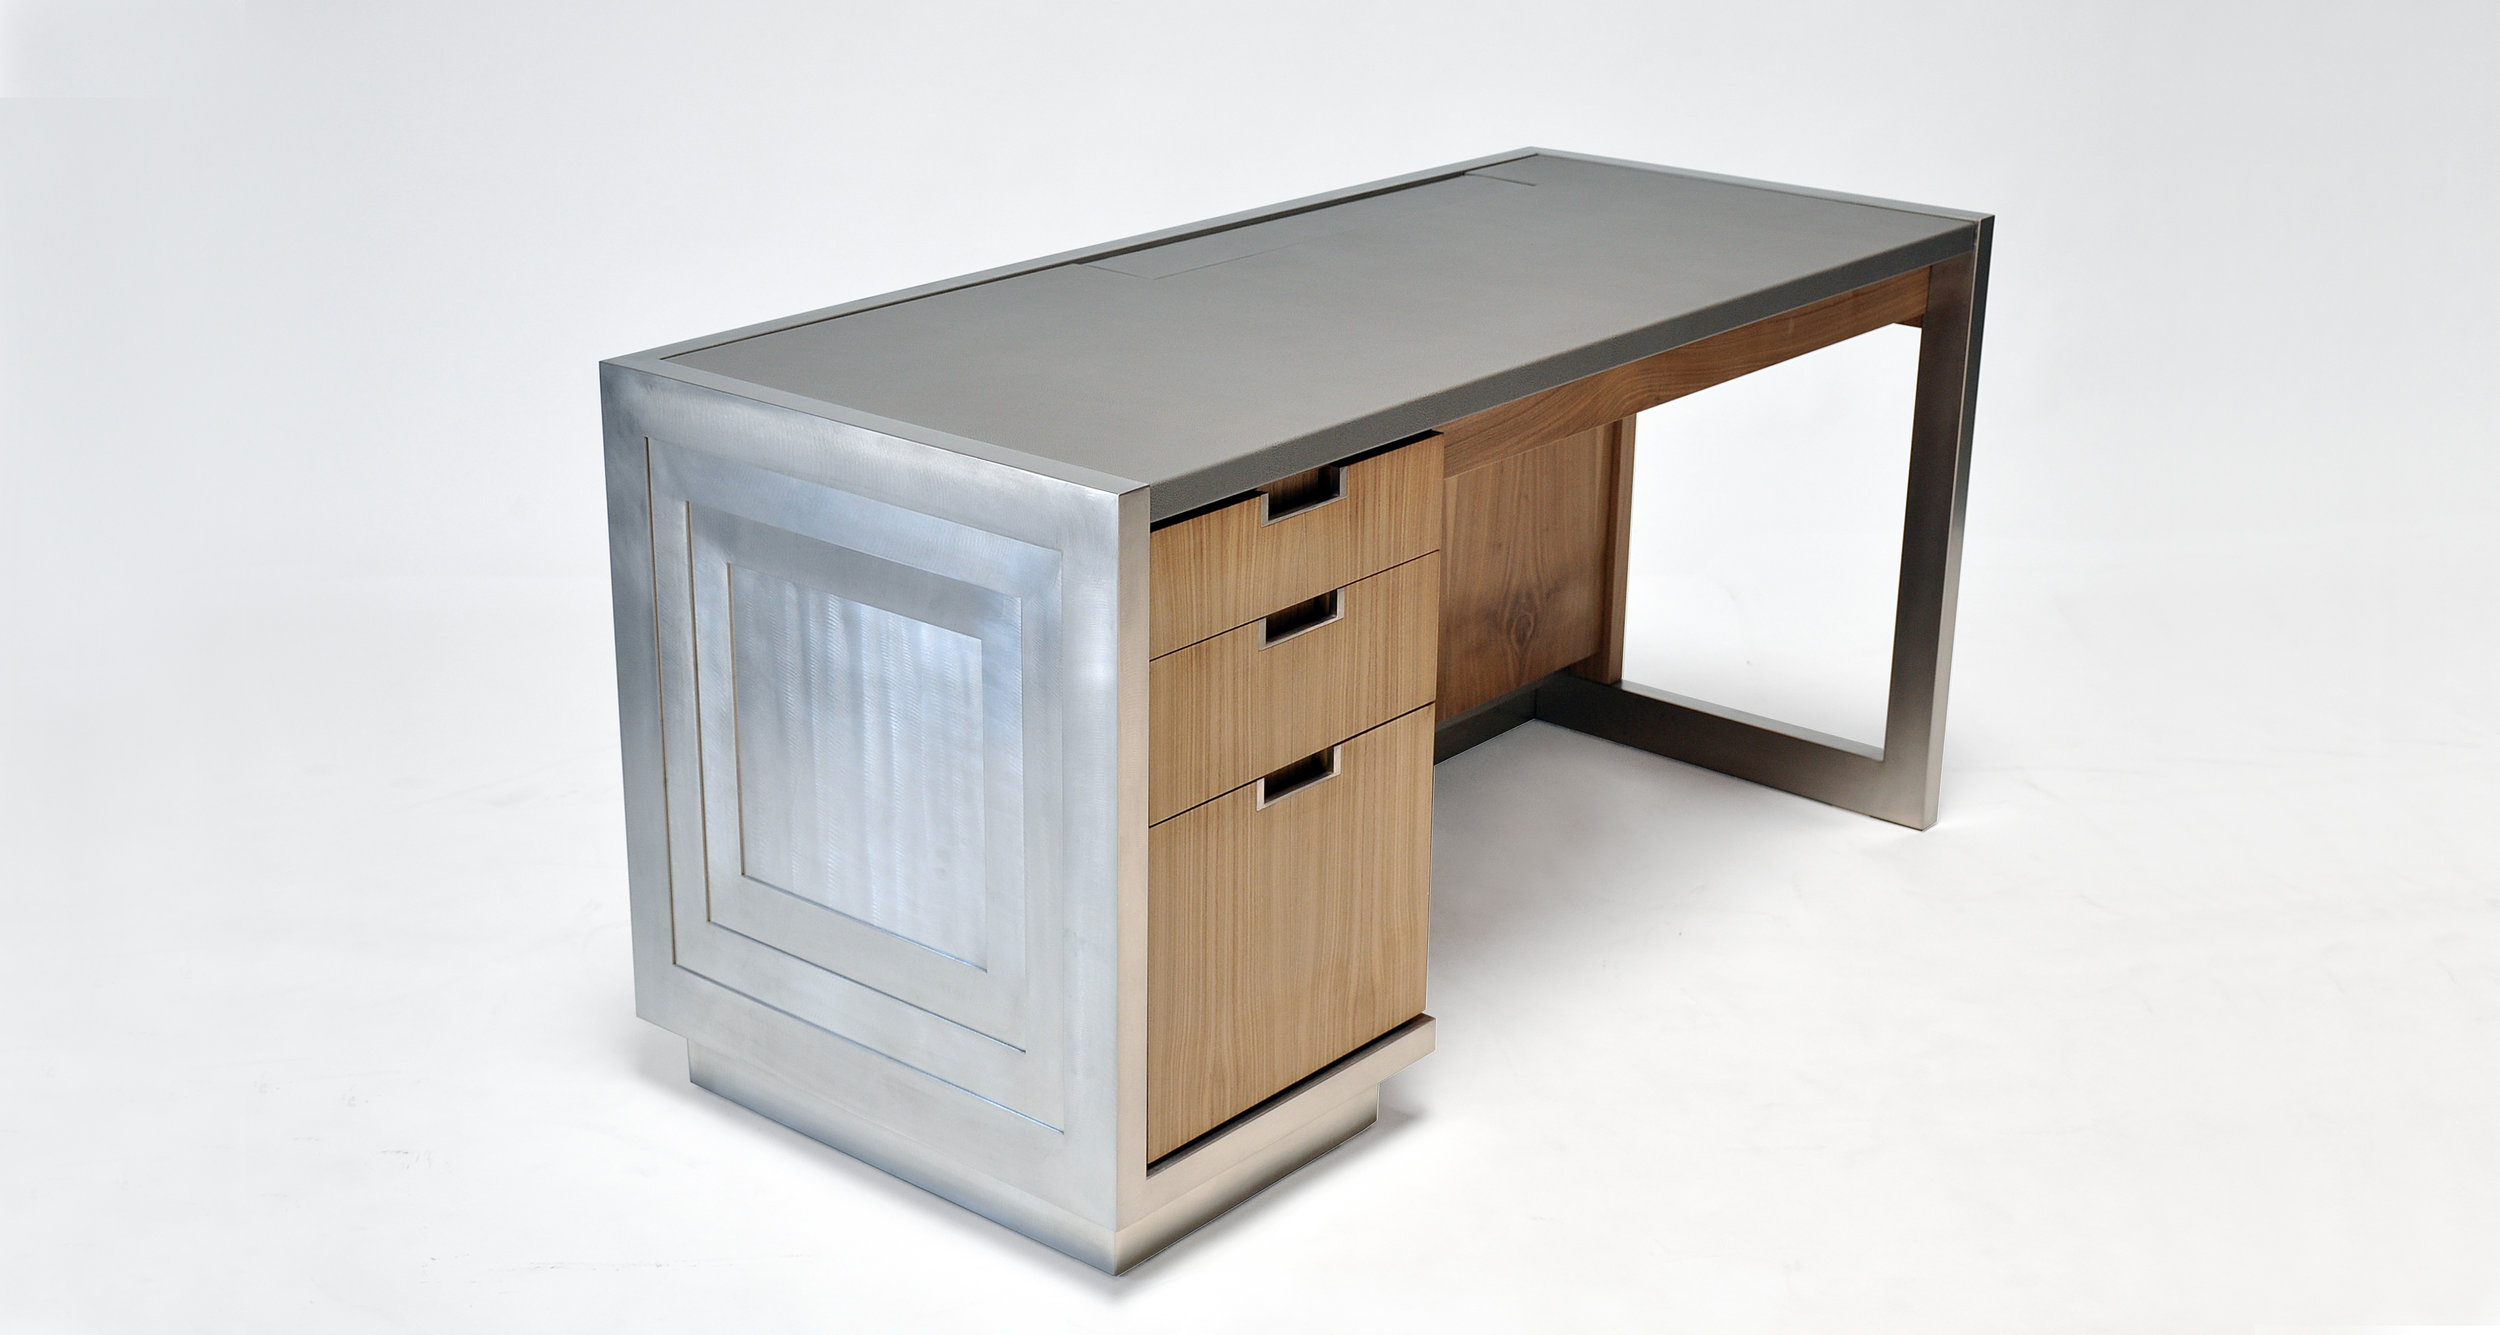 Bespoke Nickel Desk IKBA_Newell Design Studio1.jpg